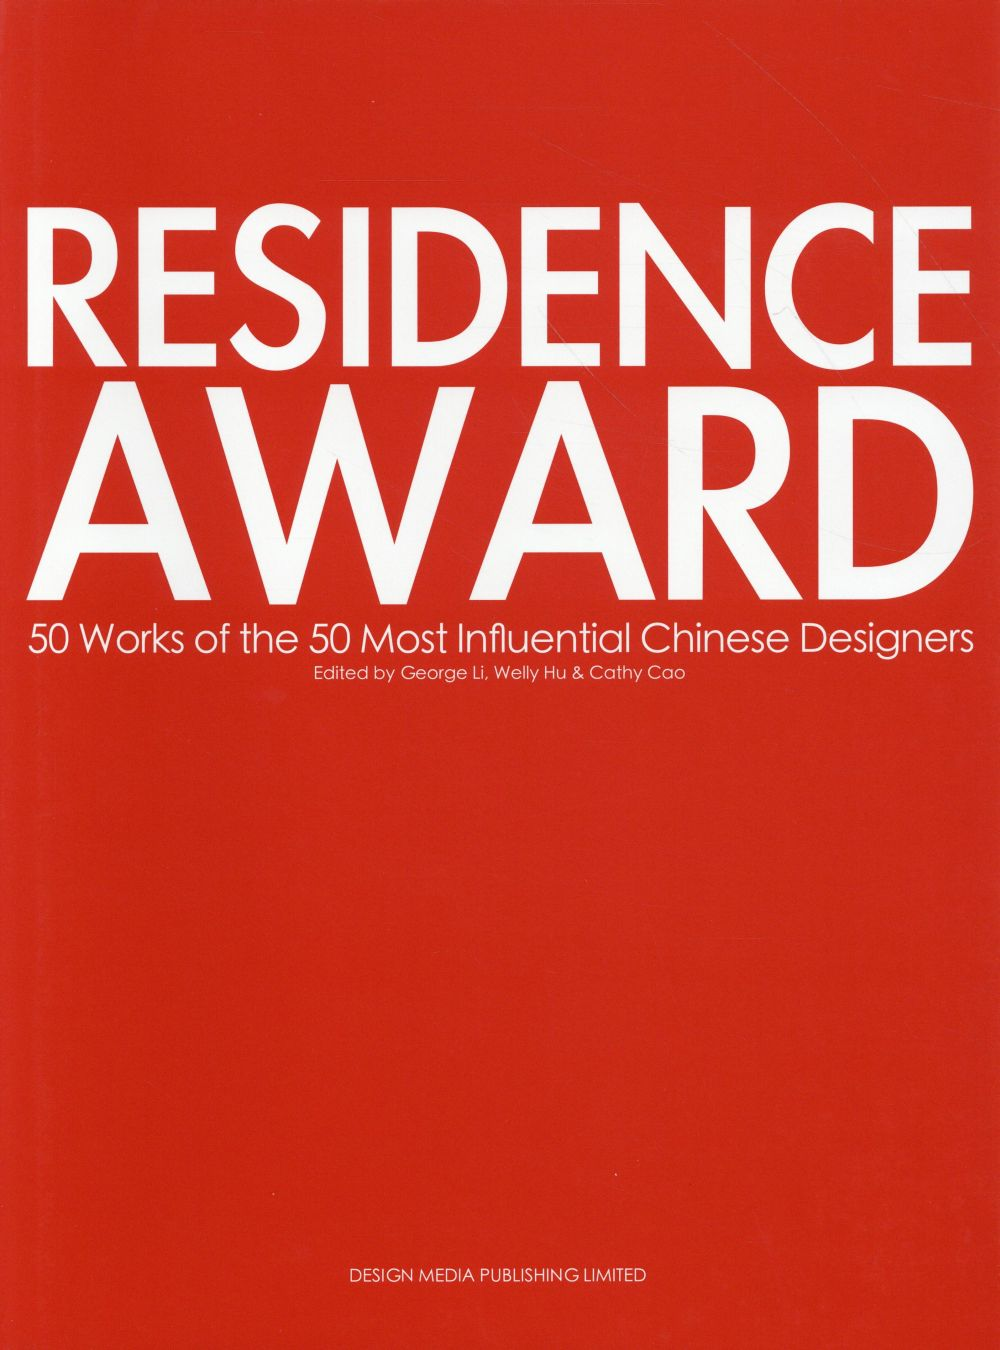 RESIDENCE AWARD  50 WORKS OF THE MOST INFLUENTIAL CHINESE DESIGNERS